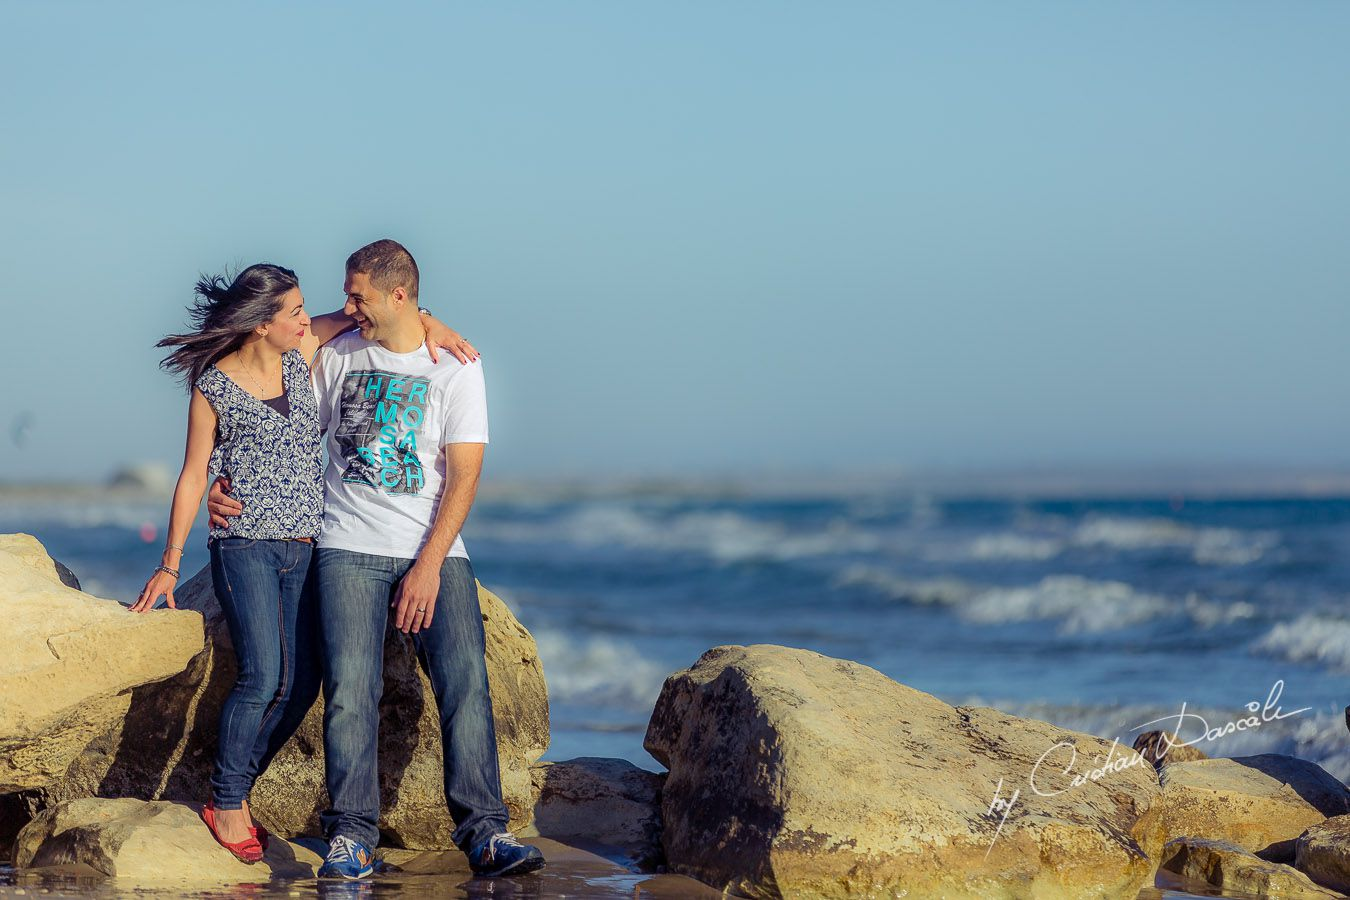 Precious moments: Maria & George at Curium Beach, Cyprus. Photographer: Cristian Dascalu